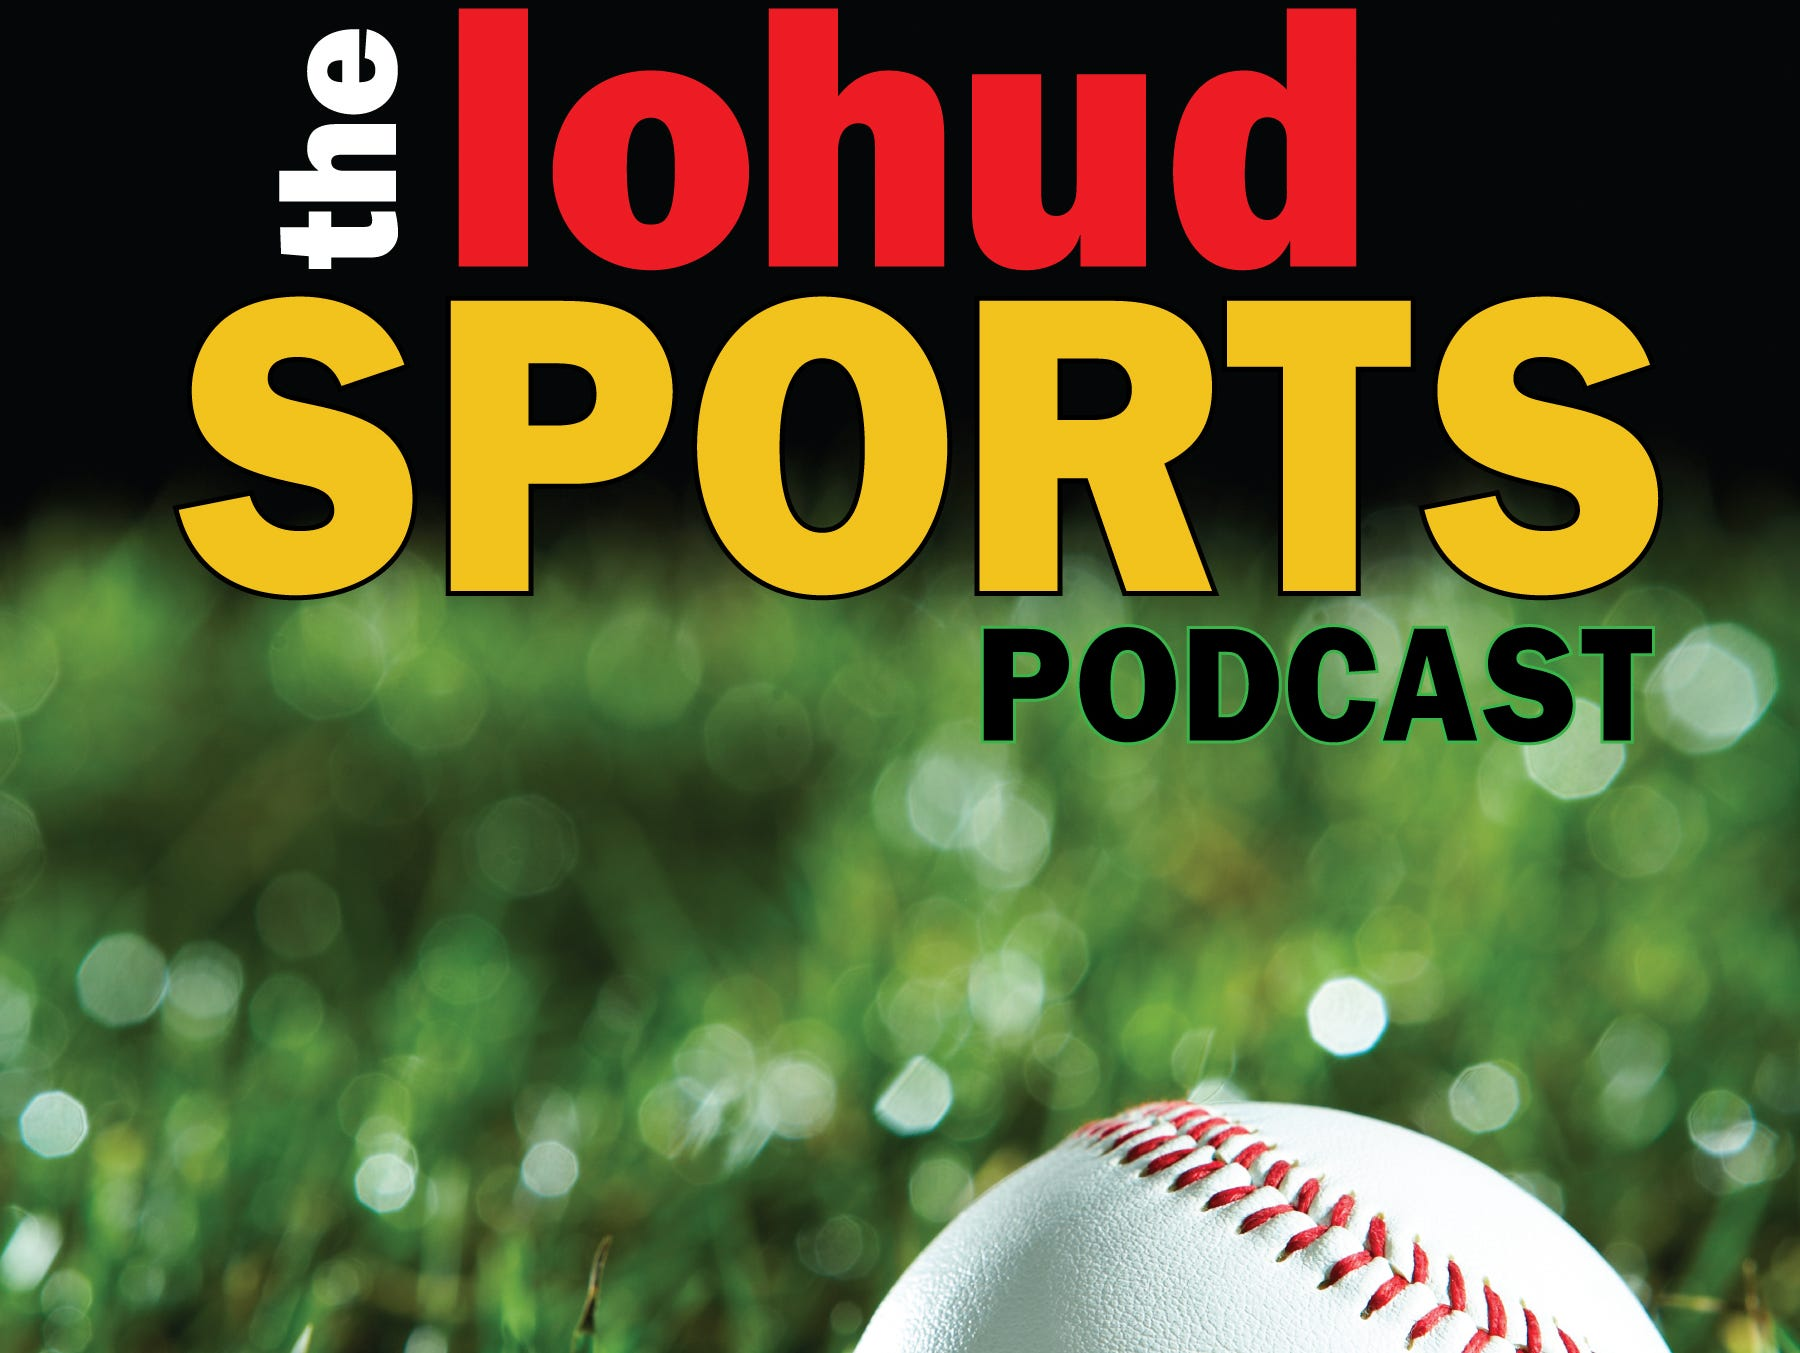 The lohud sports podcast.